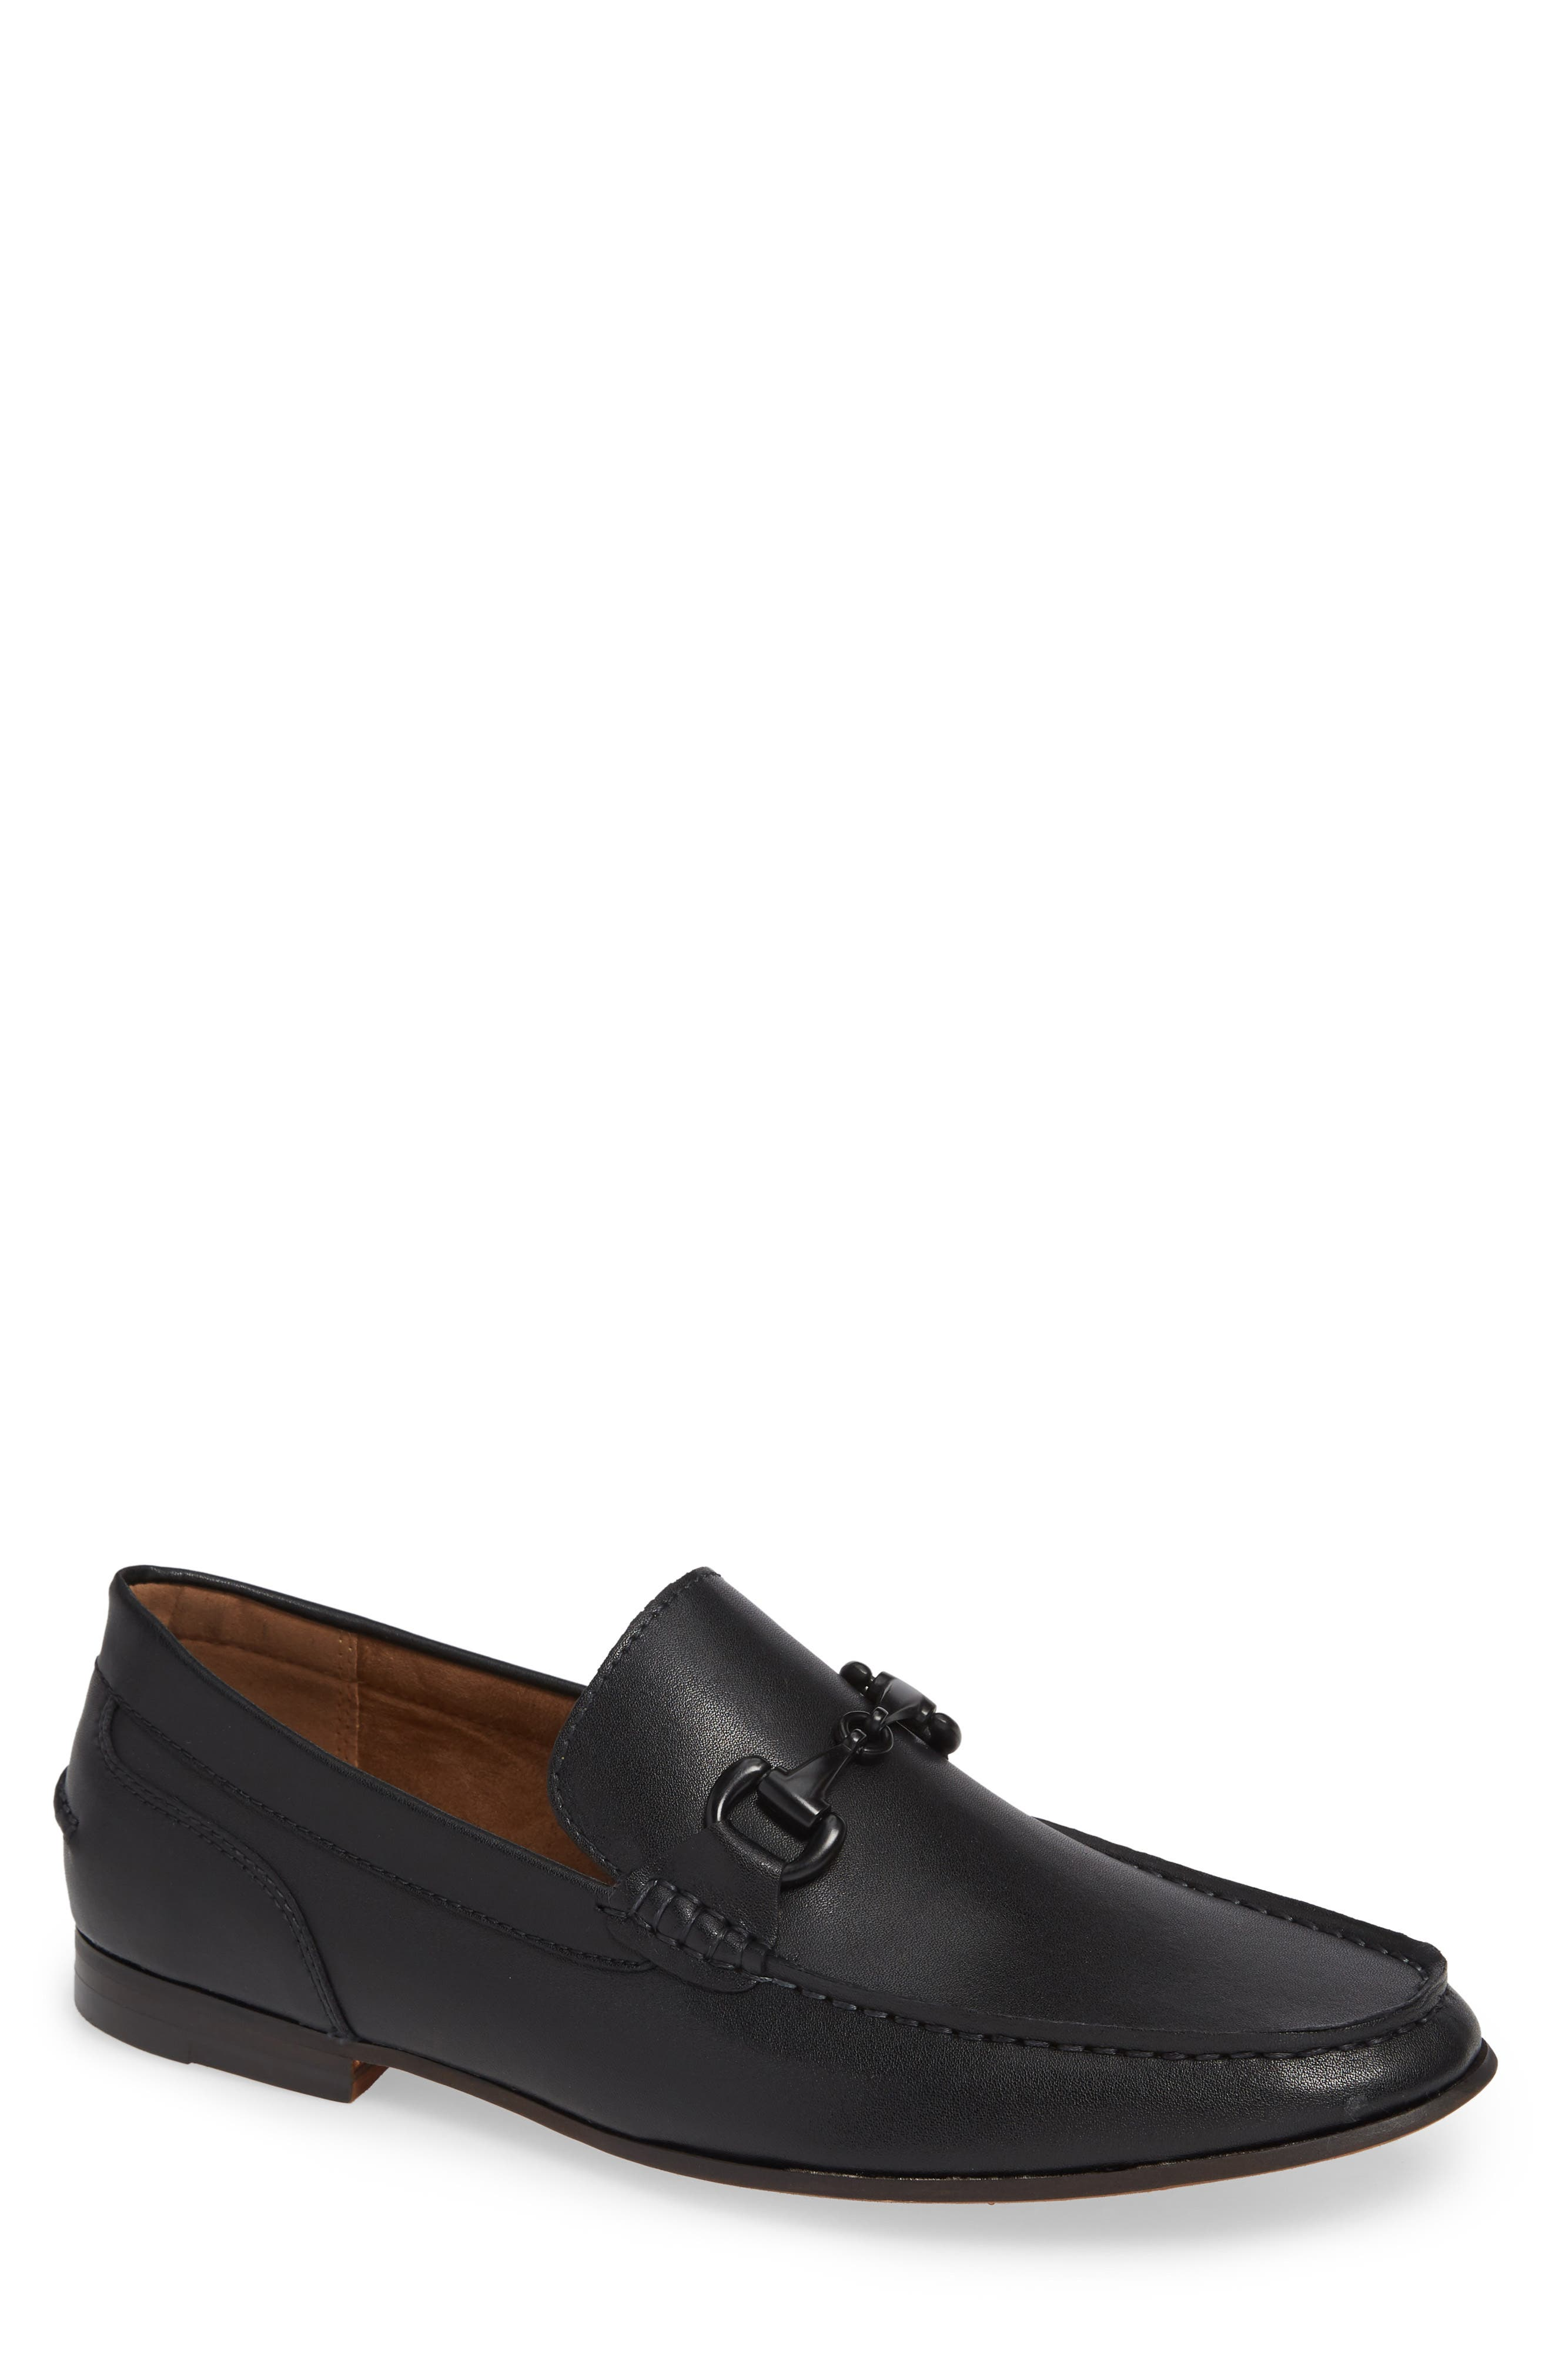 Crespo Loafer,                             Main thumbnail 1, color,                             BLACK SYNTHETIC LEATHER